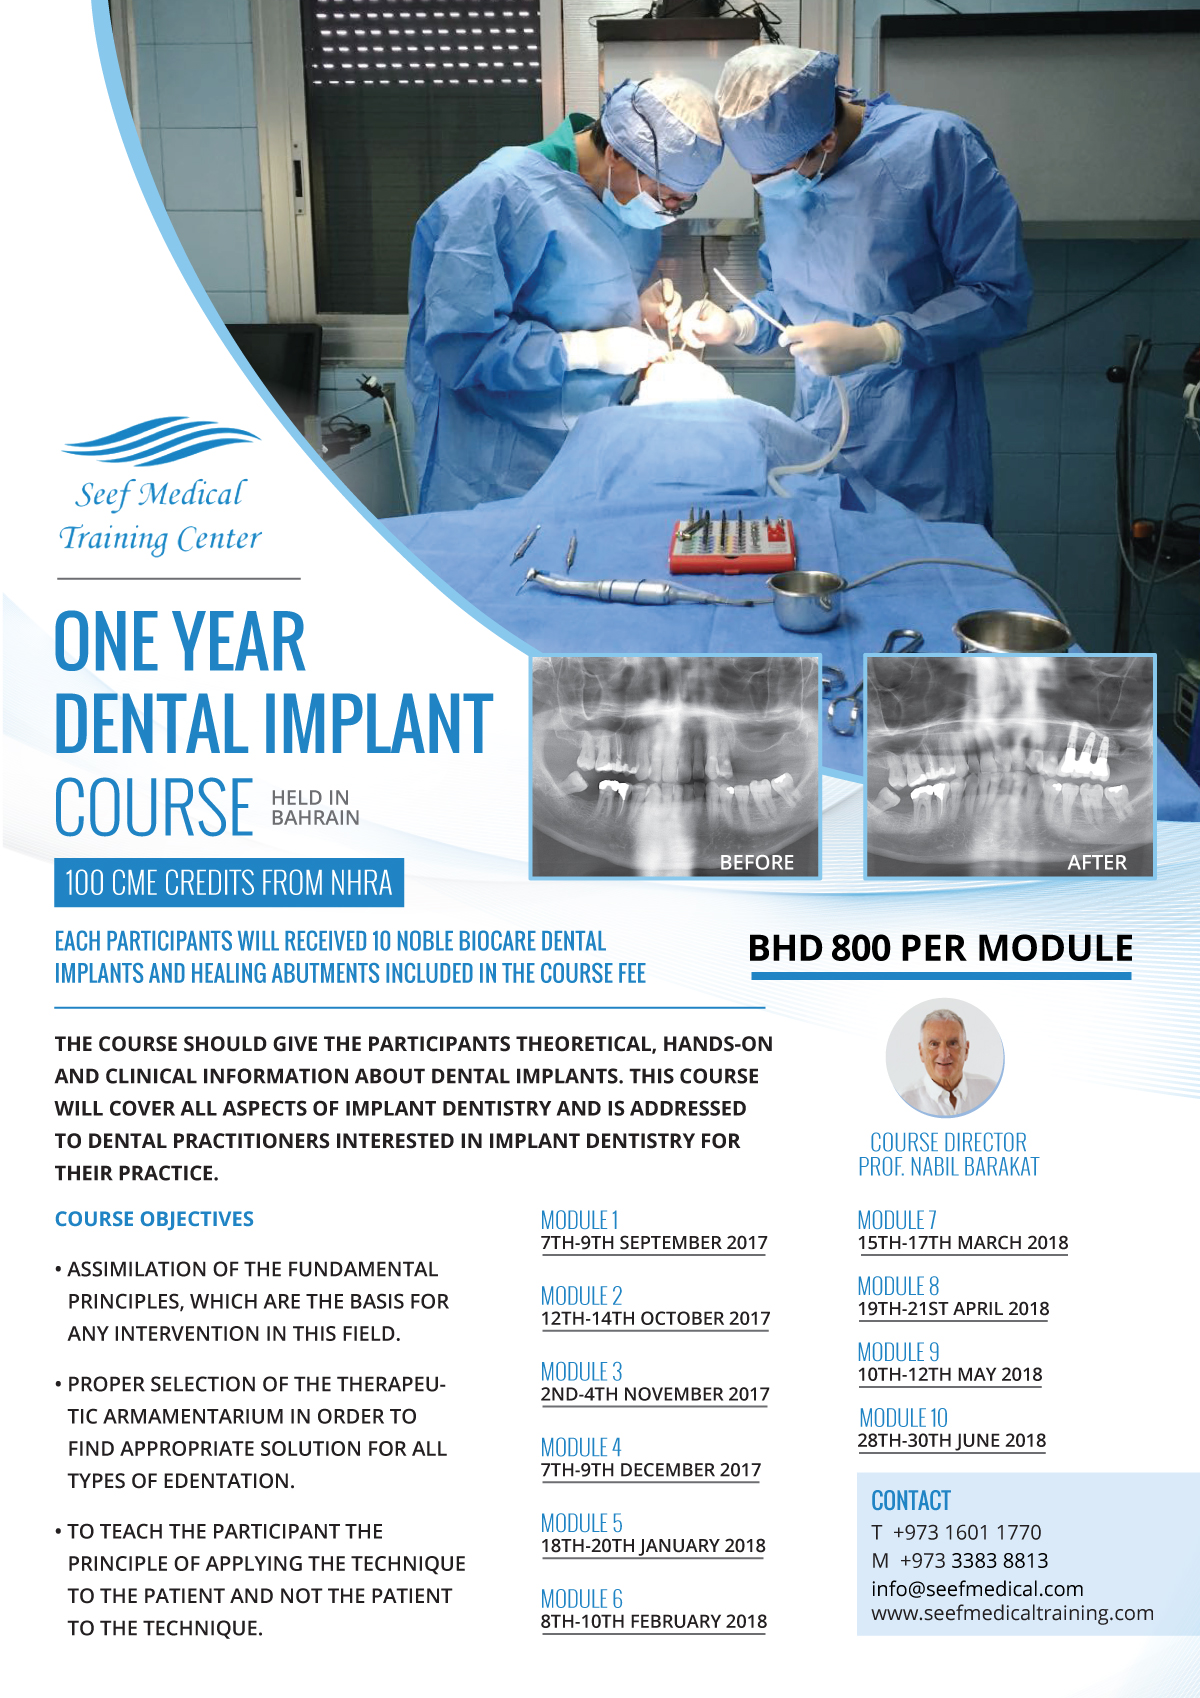 A One Year Program in Dental Implants